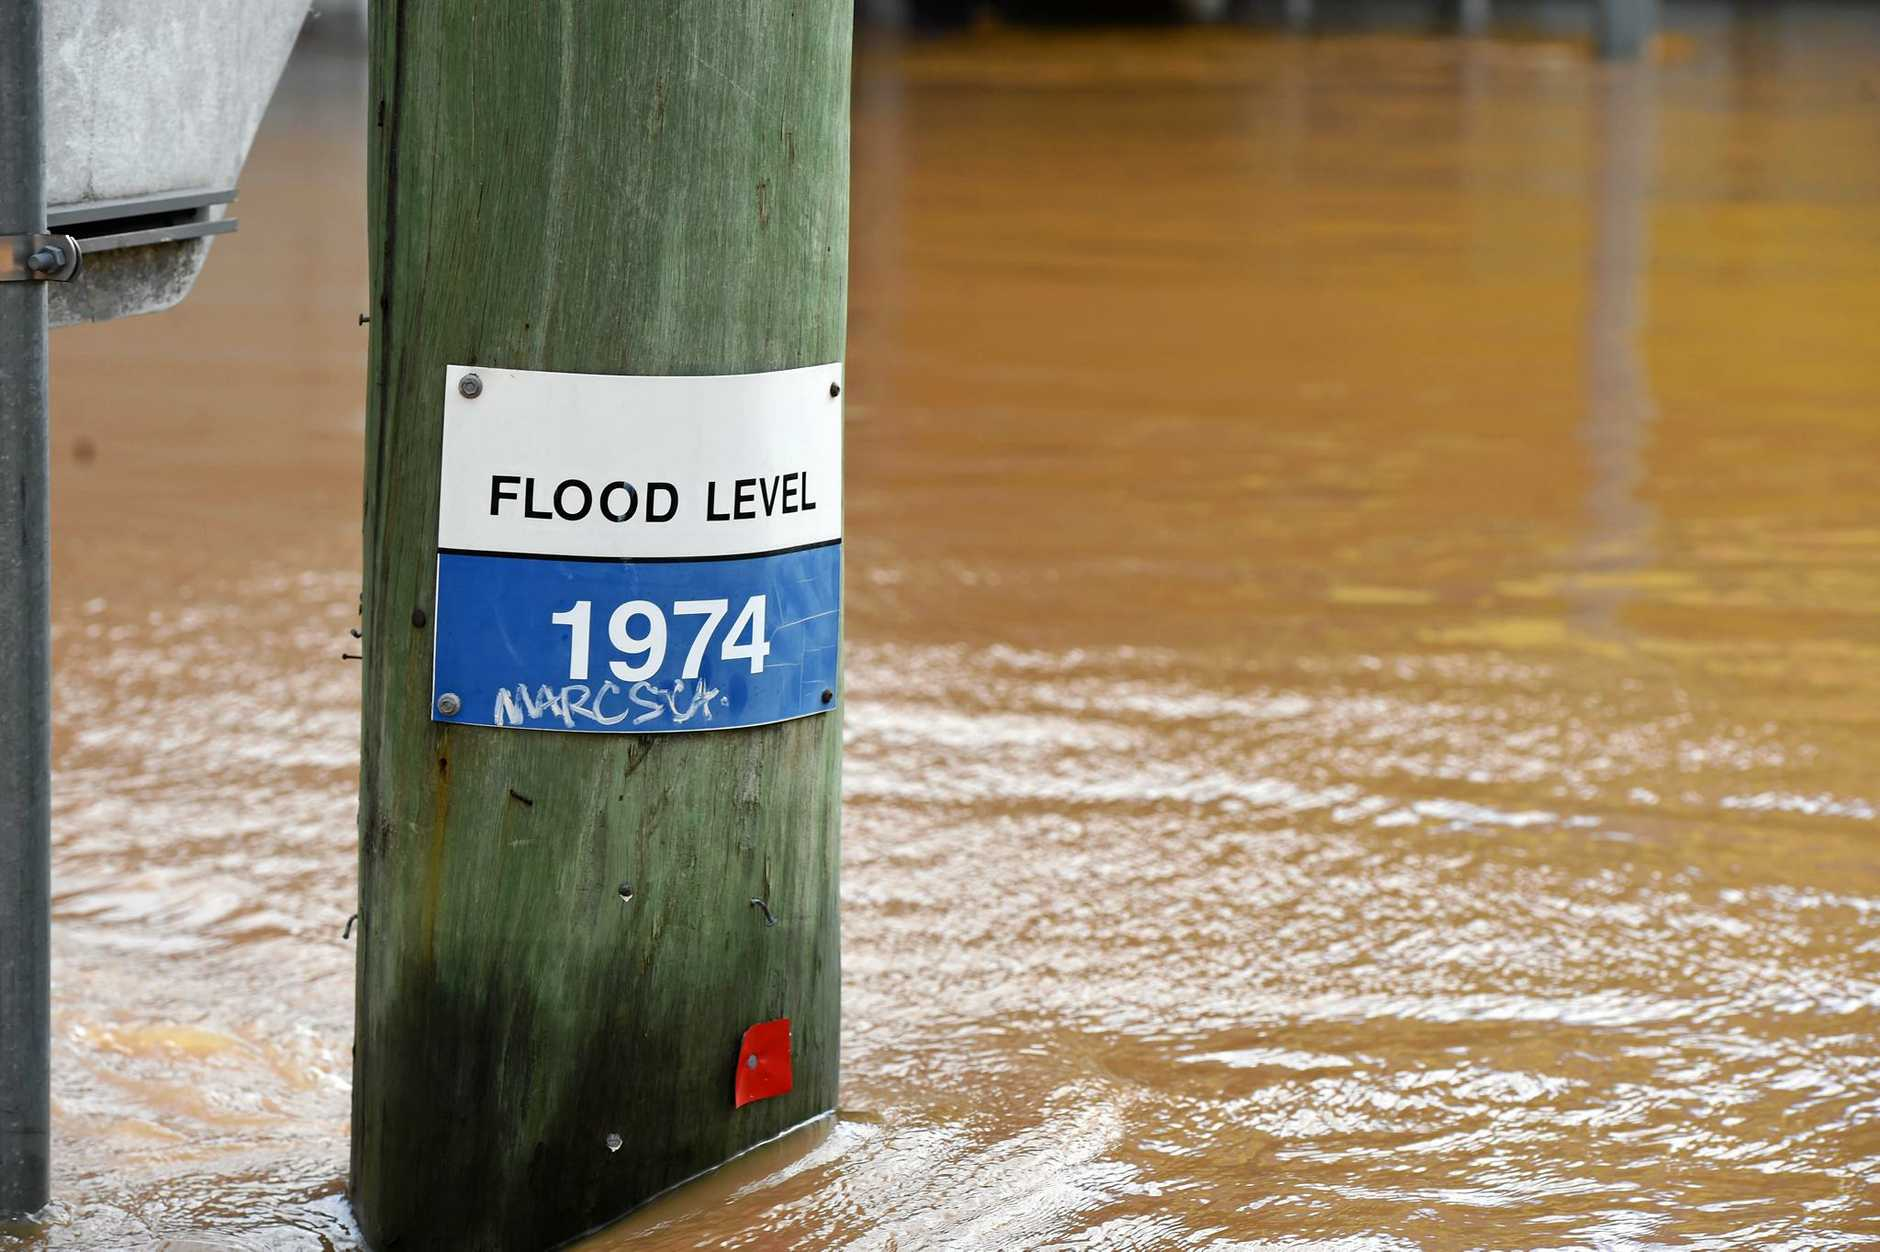 The flood water near reaches 1974 levels in North Lismore.